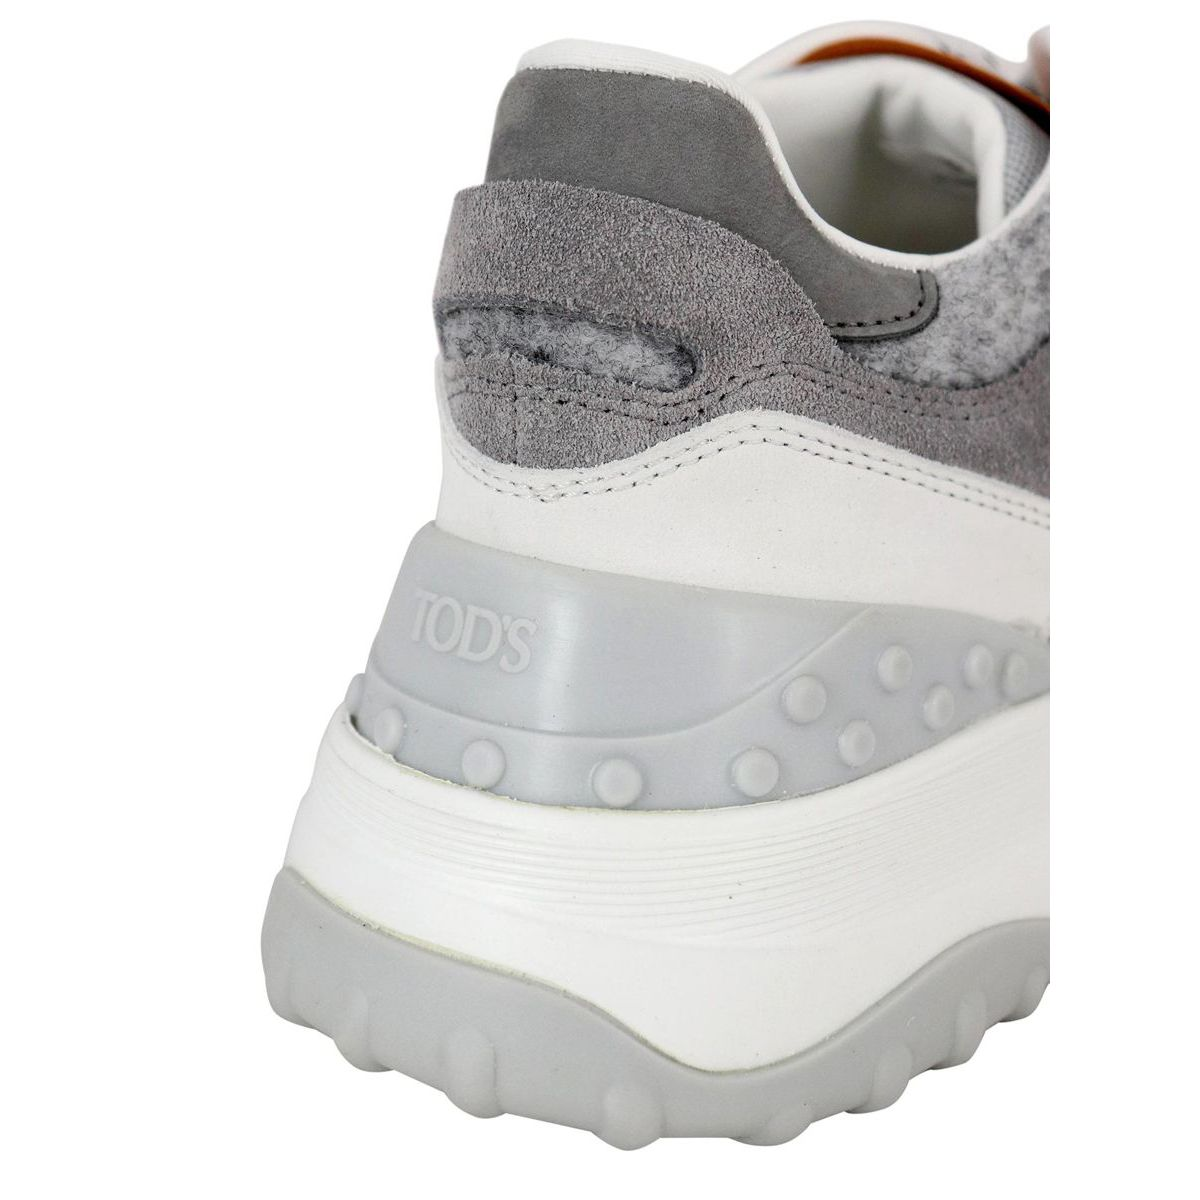 45B sports bottom sneakers White / gray Tod's